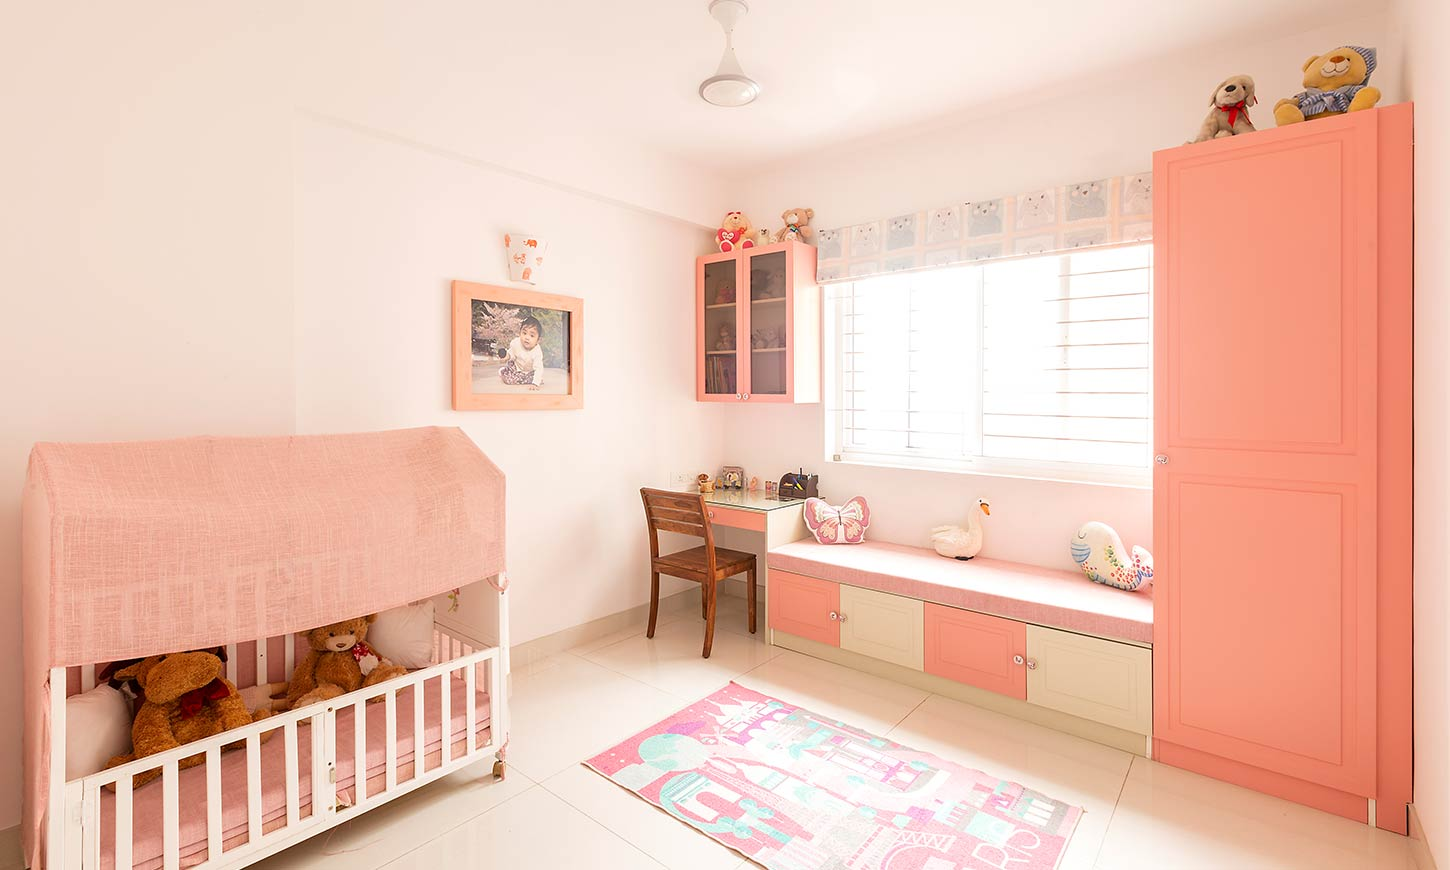 Kids room interior with study table designed by best interior design in bangalore